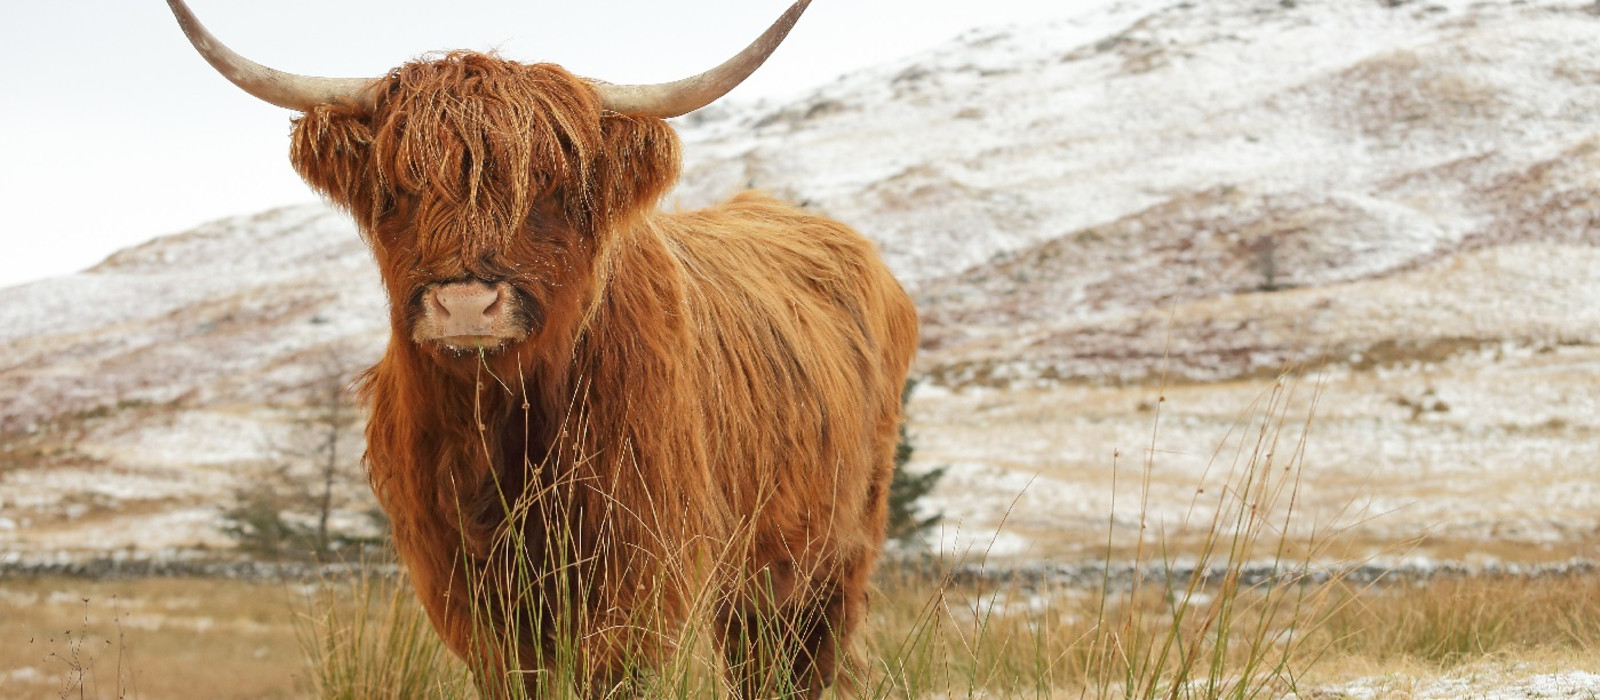 Scottish Highland Cow on a snow covered landscape in the highlands of Scotland